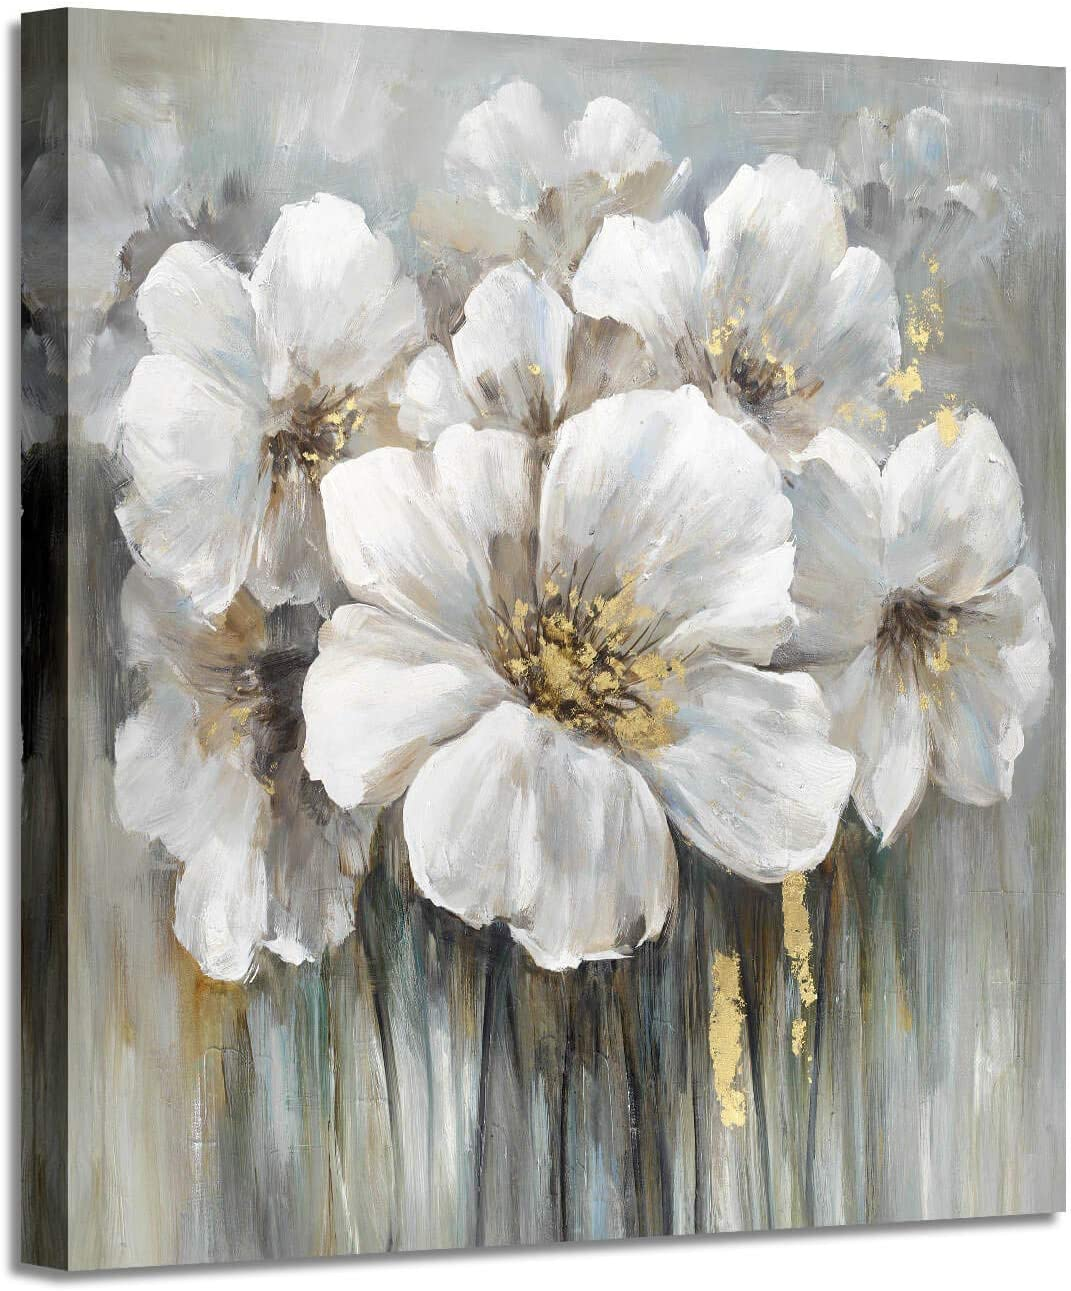 Amazon Com Wall Art Botanical Pictures Painting White Lily Bouquet Of Flowers Picture Floral Artwork On Wrapped Canvas For Walls 28 W X 28 H Multi Sized Posters Prints